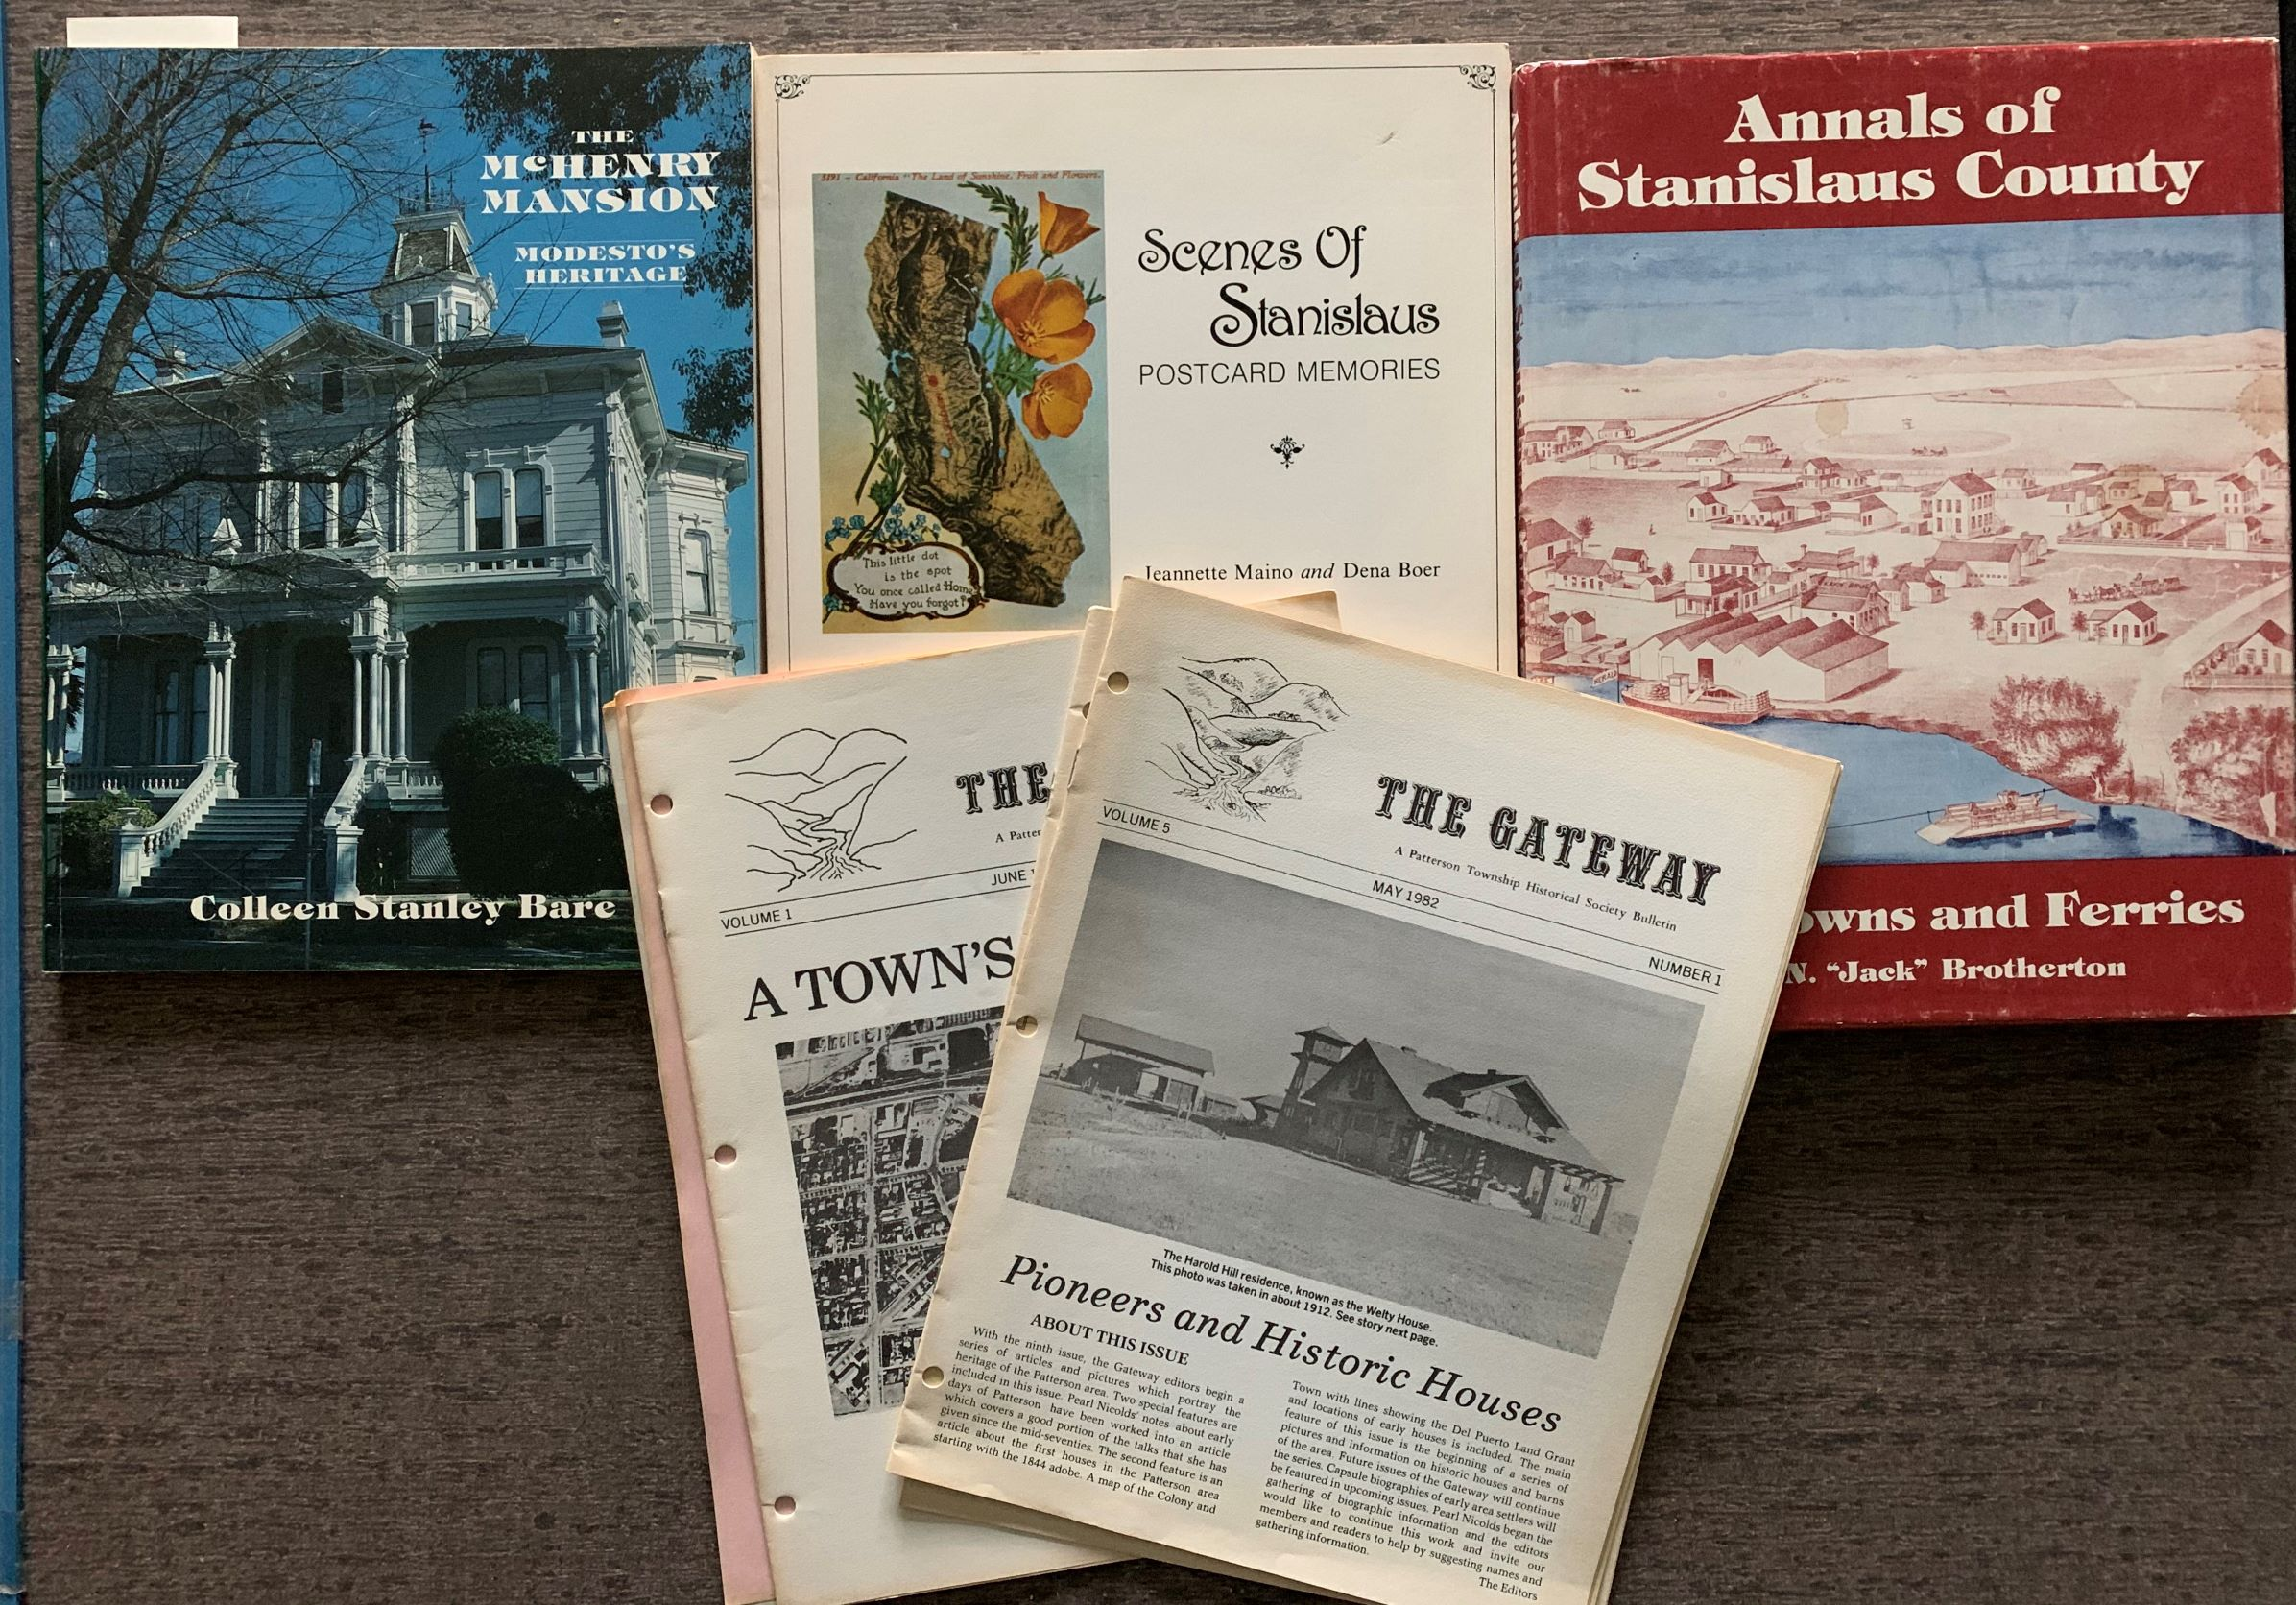 Image for [Three Titles, plus additons] The Annals of Stanislaus County, Volume 1: River Towns and Ferries; The McHenry Mansion, Modesto's Heritage [inscribed by the author]; Scenes of Stanislaus, Postcard Memories.